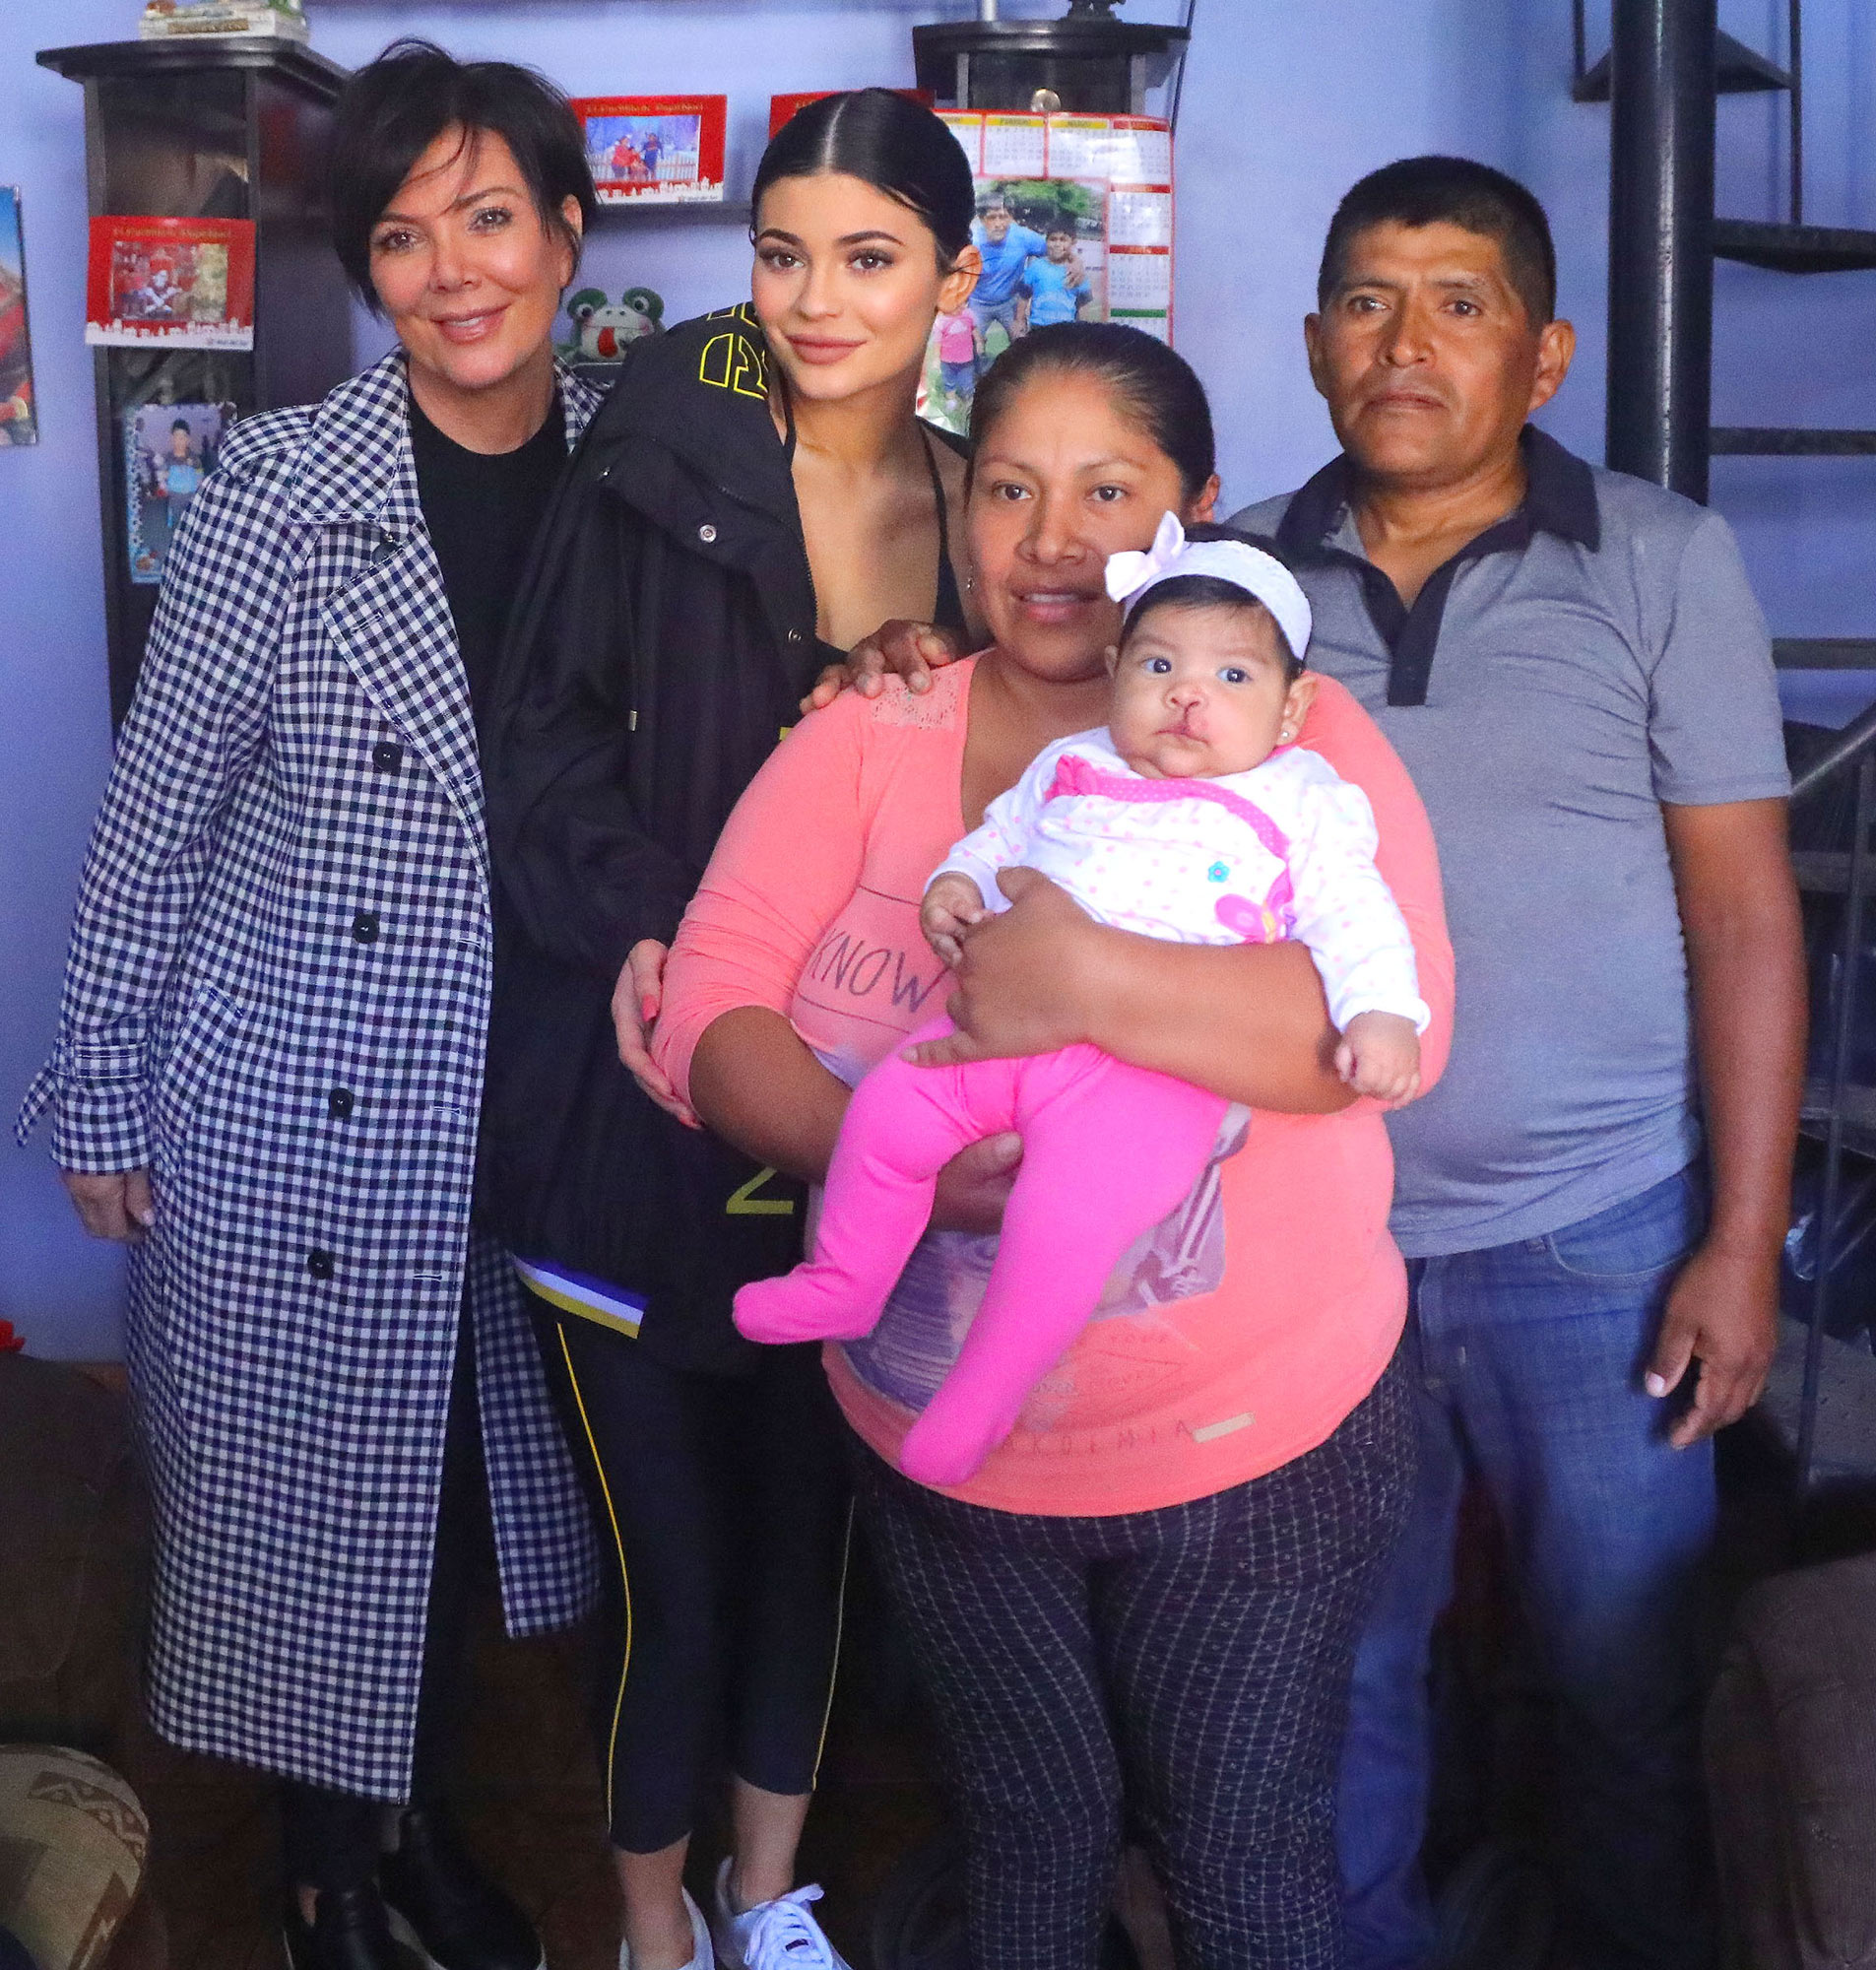 EXCLUSIVE: **PREMIUM EXCLUSIVE RATES APPLY**Kylie and Kris Jenner visit a hospital in Peru